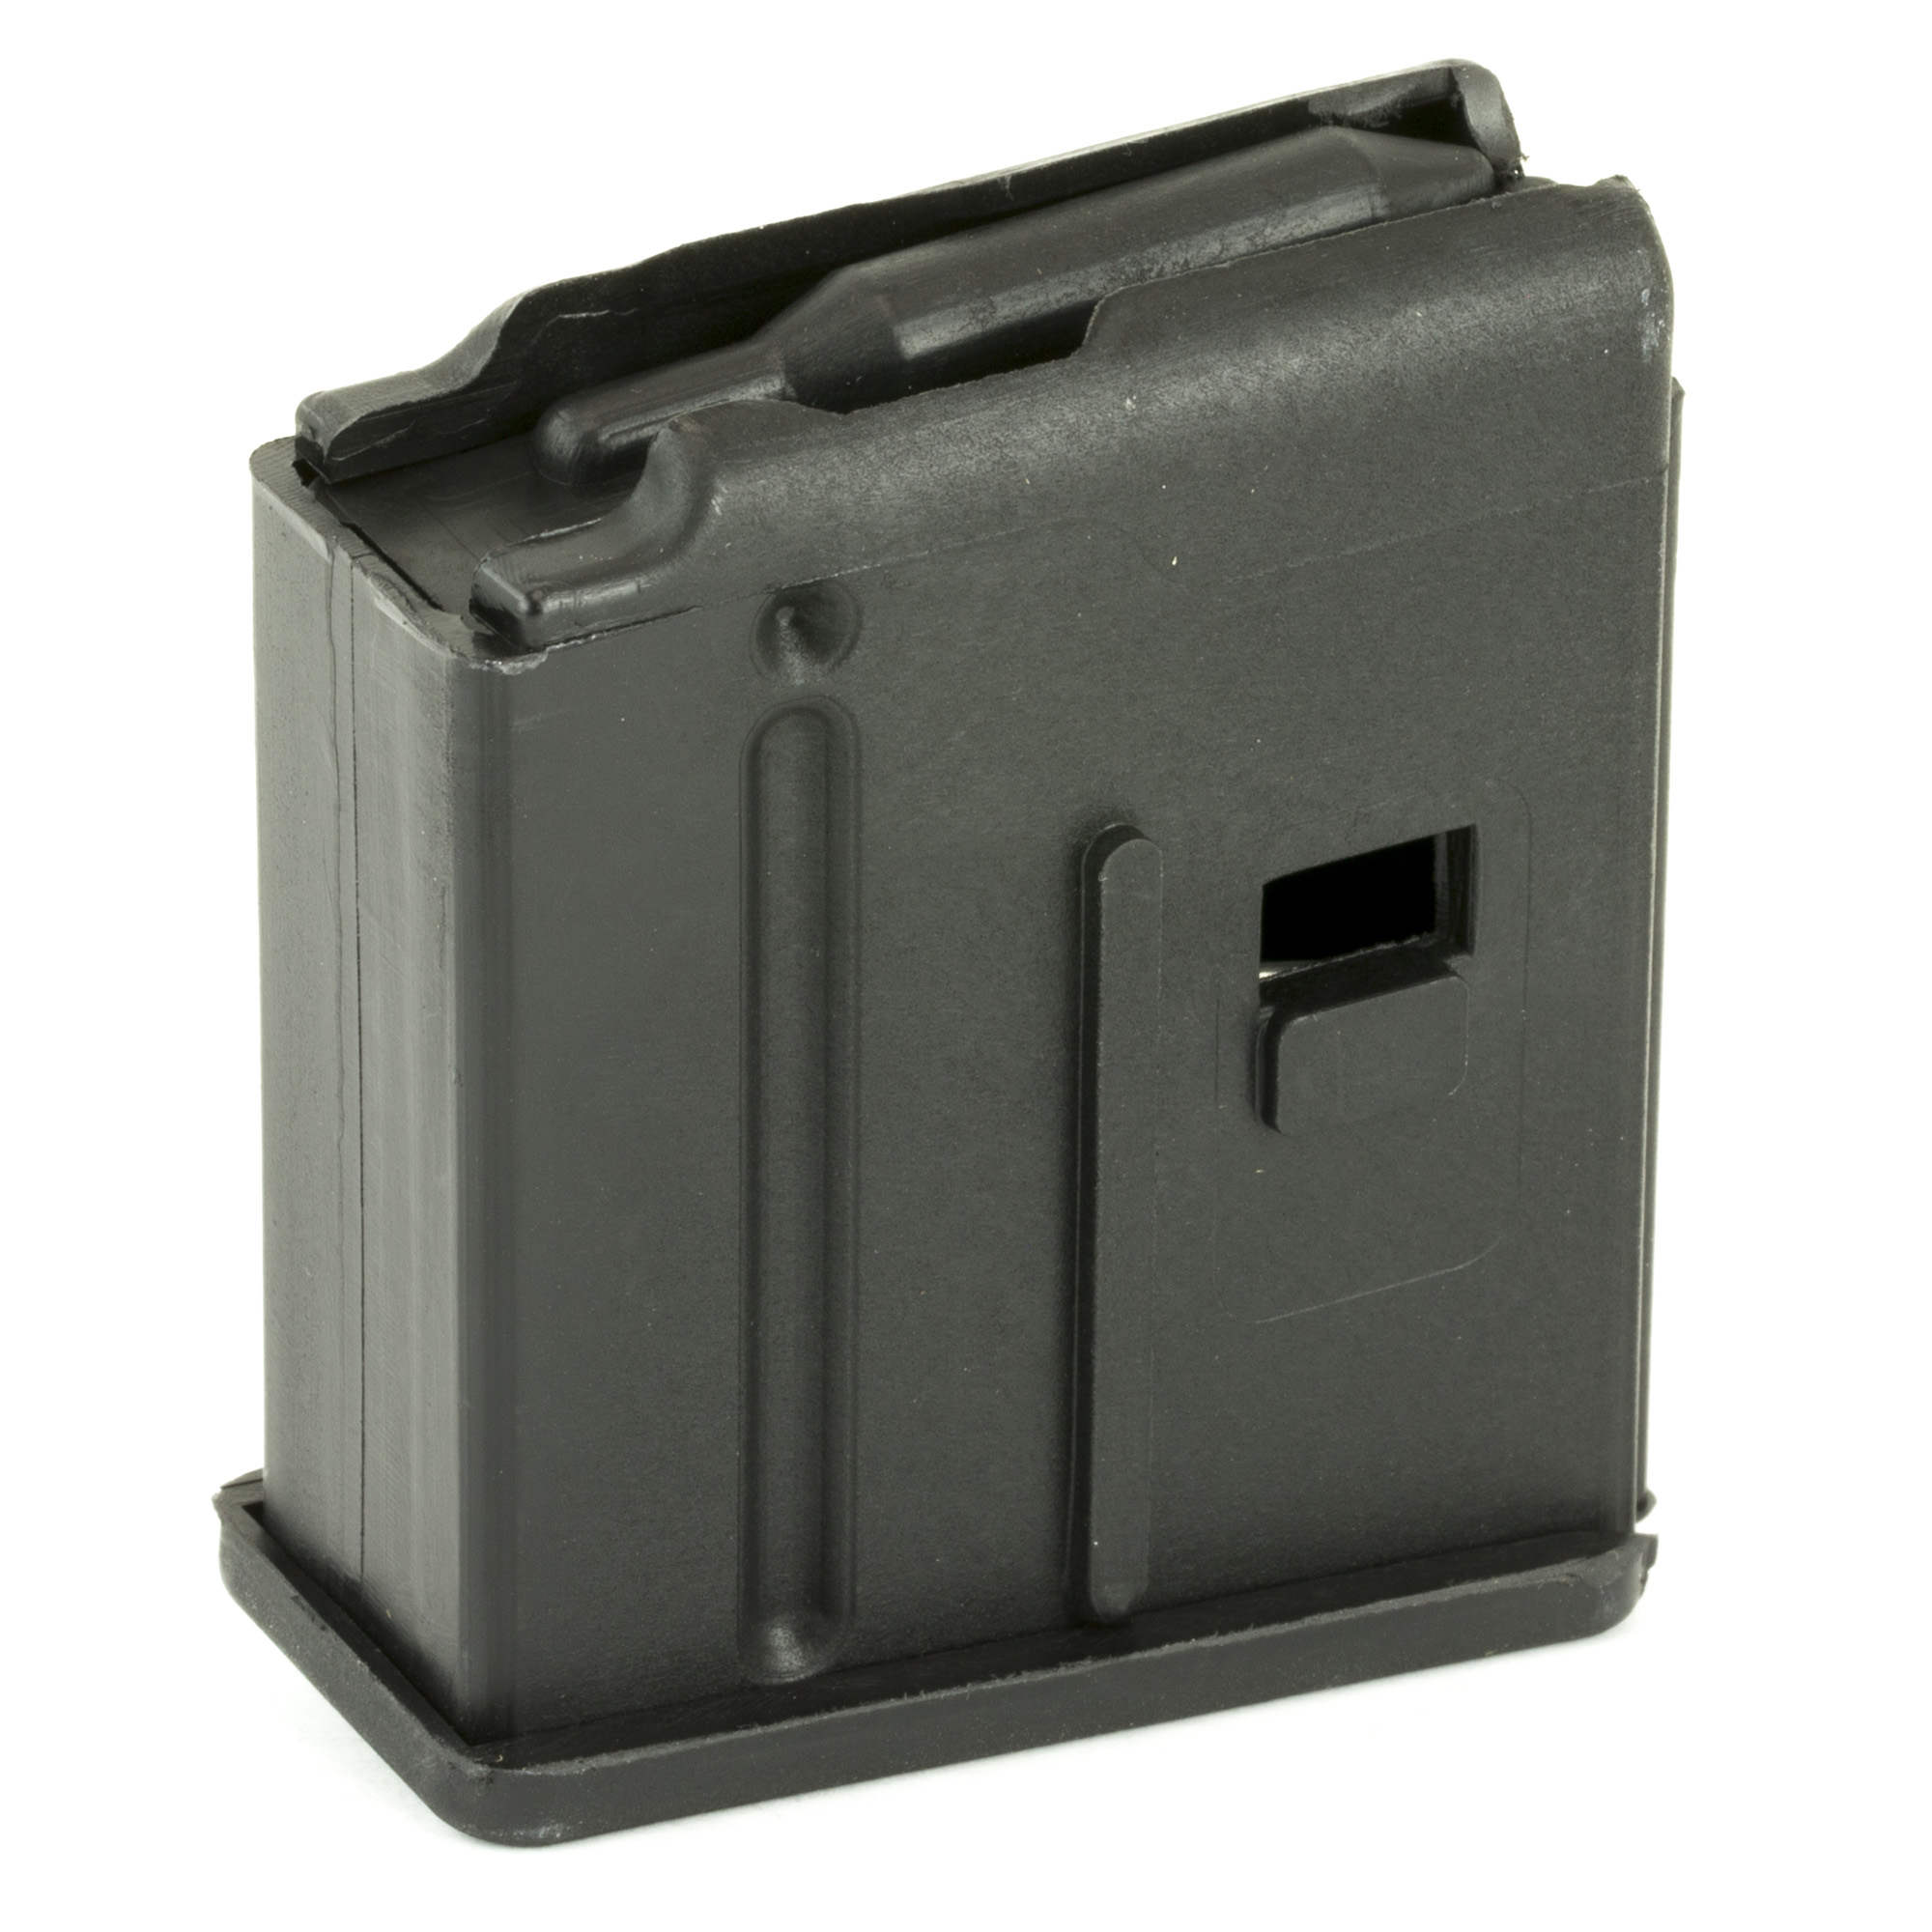 """This magazine is made to Kel-Tec's specifications and tolerances using quality materials that provide perfect fit"""" durability and reliability."""